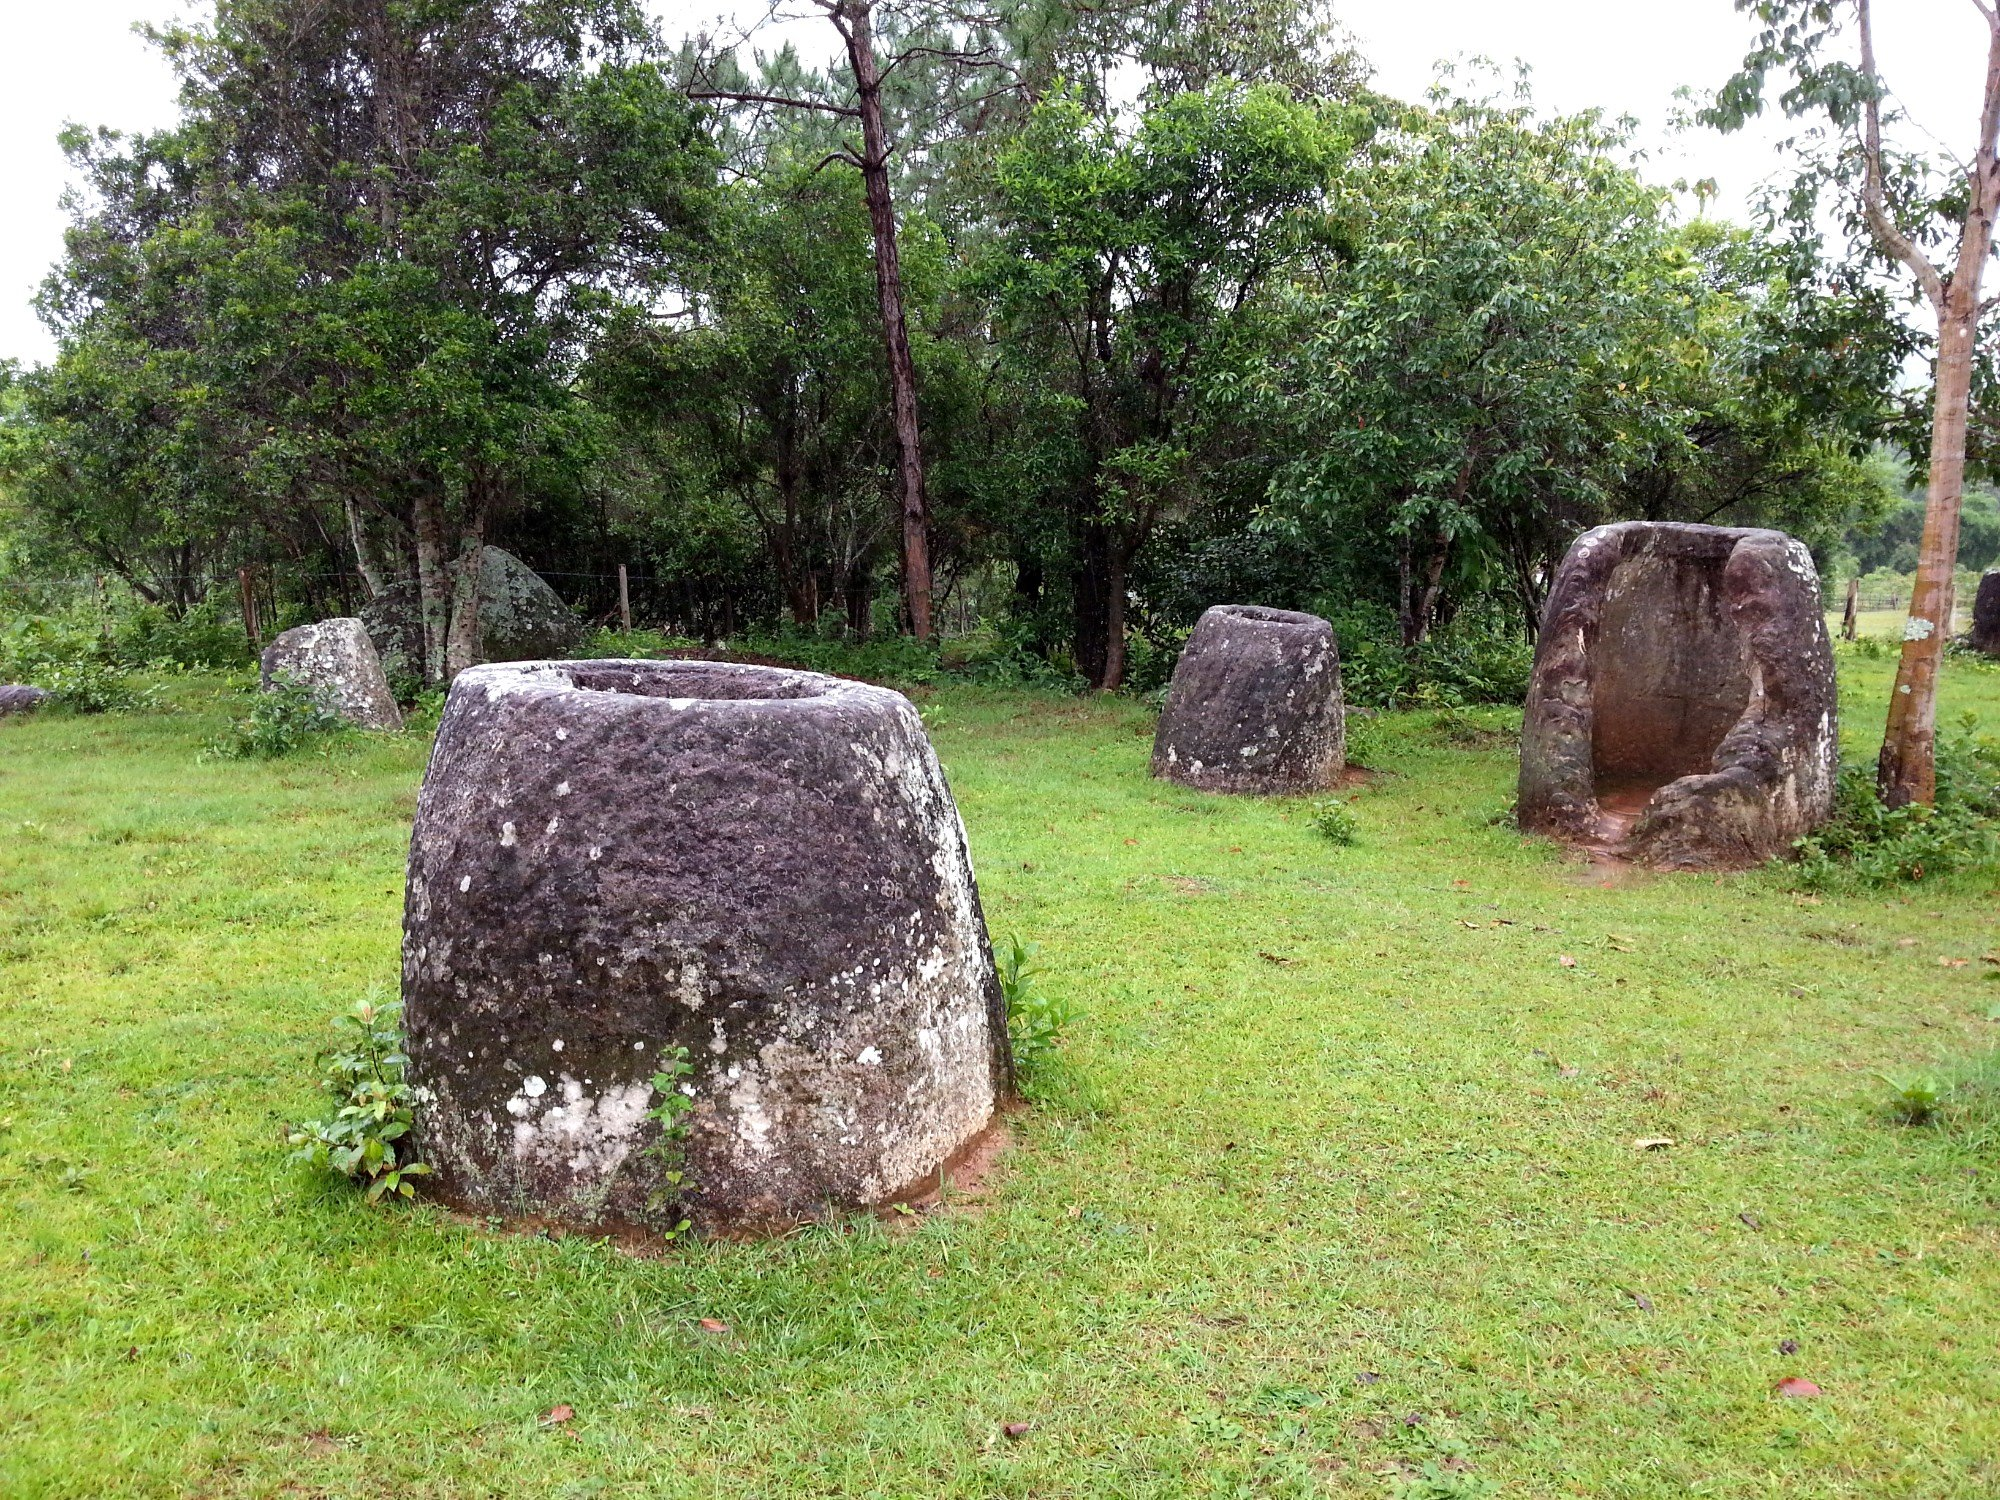 Larger jars at Jar Site 3